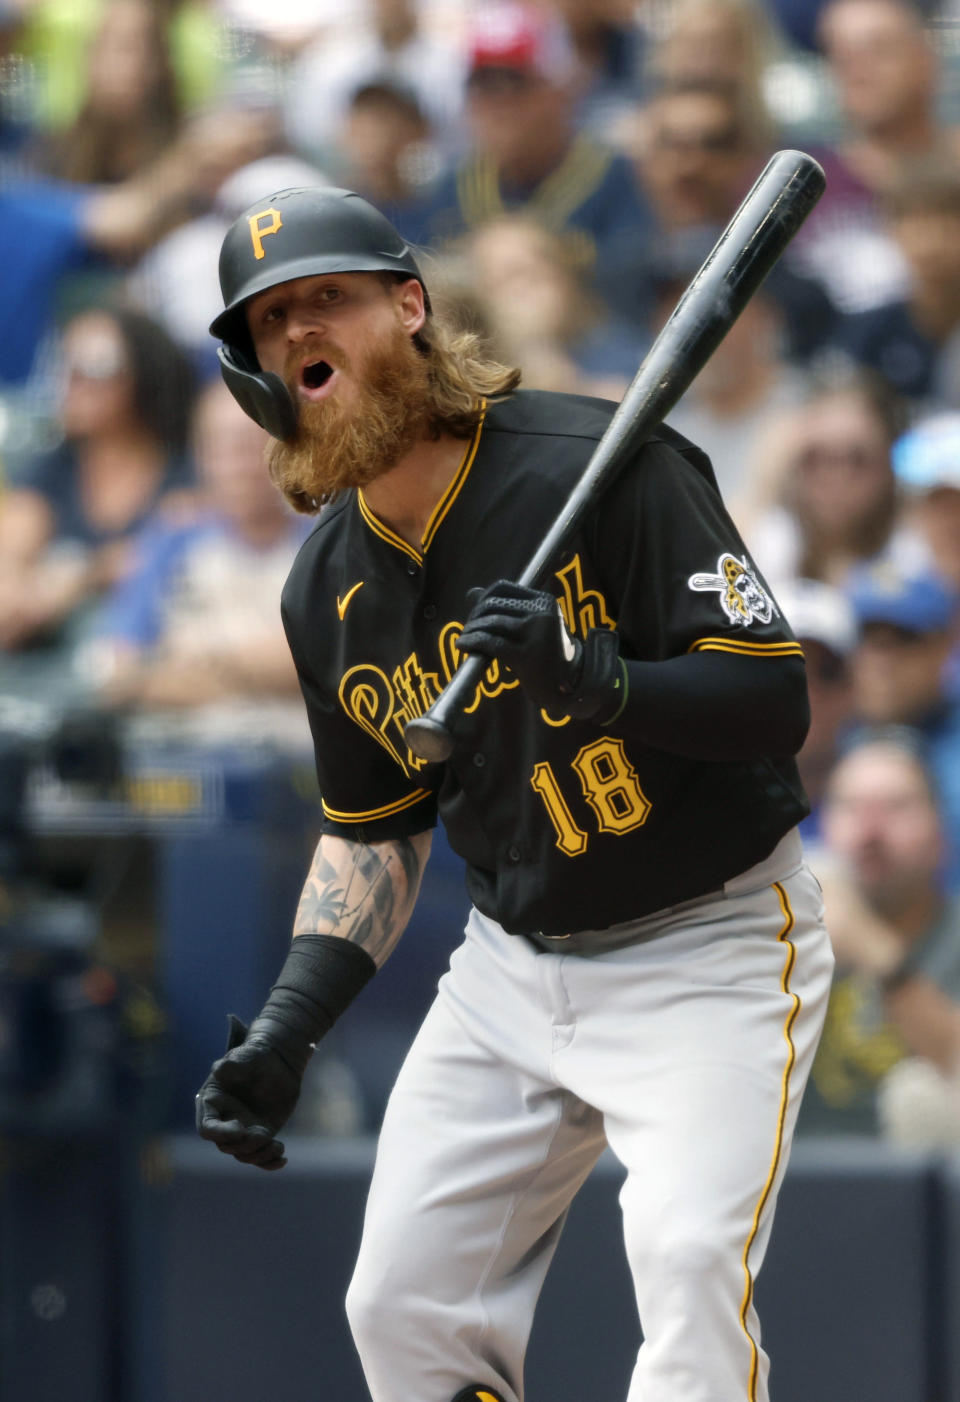 Pittsburgh Pirates' Ben Gamel reacts after a called third strike against the Milwaukee Brewers during the third inning of a baseball game Wednesday, Aug. 4, 2021, in Milwaukee. (AP Photo/Jeffrey Phelps)